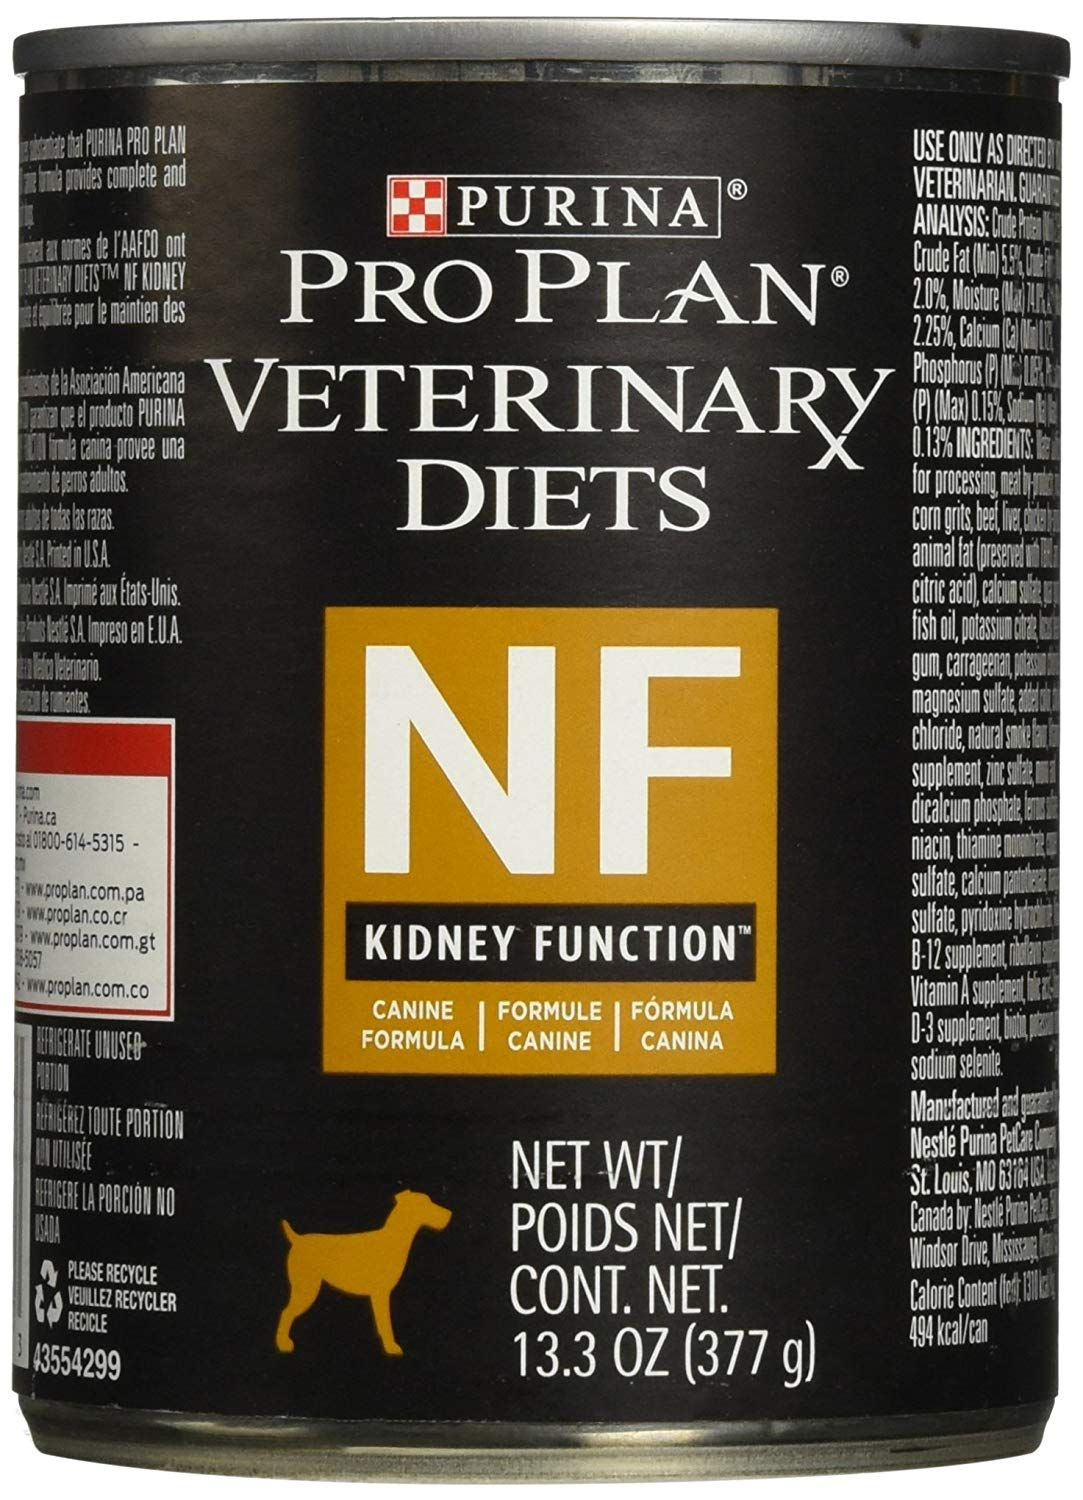 Purina Nf Kidney Function Canine Formula Canned Dog Food 12 13 3 Oz Thank You For Having Viewed Our Photograph Canned Dog Food Dog Food Recipes Wet Dog Food